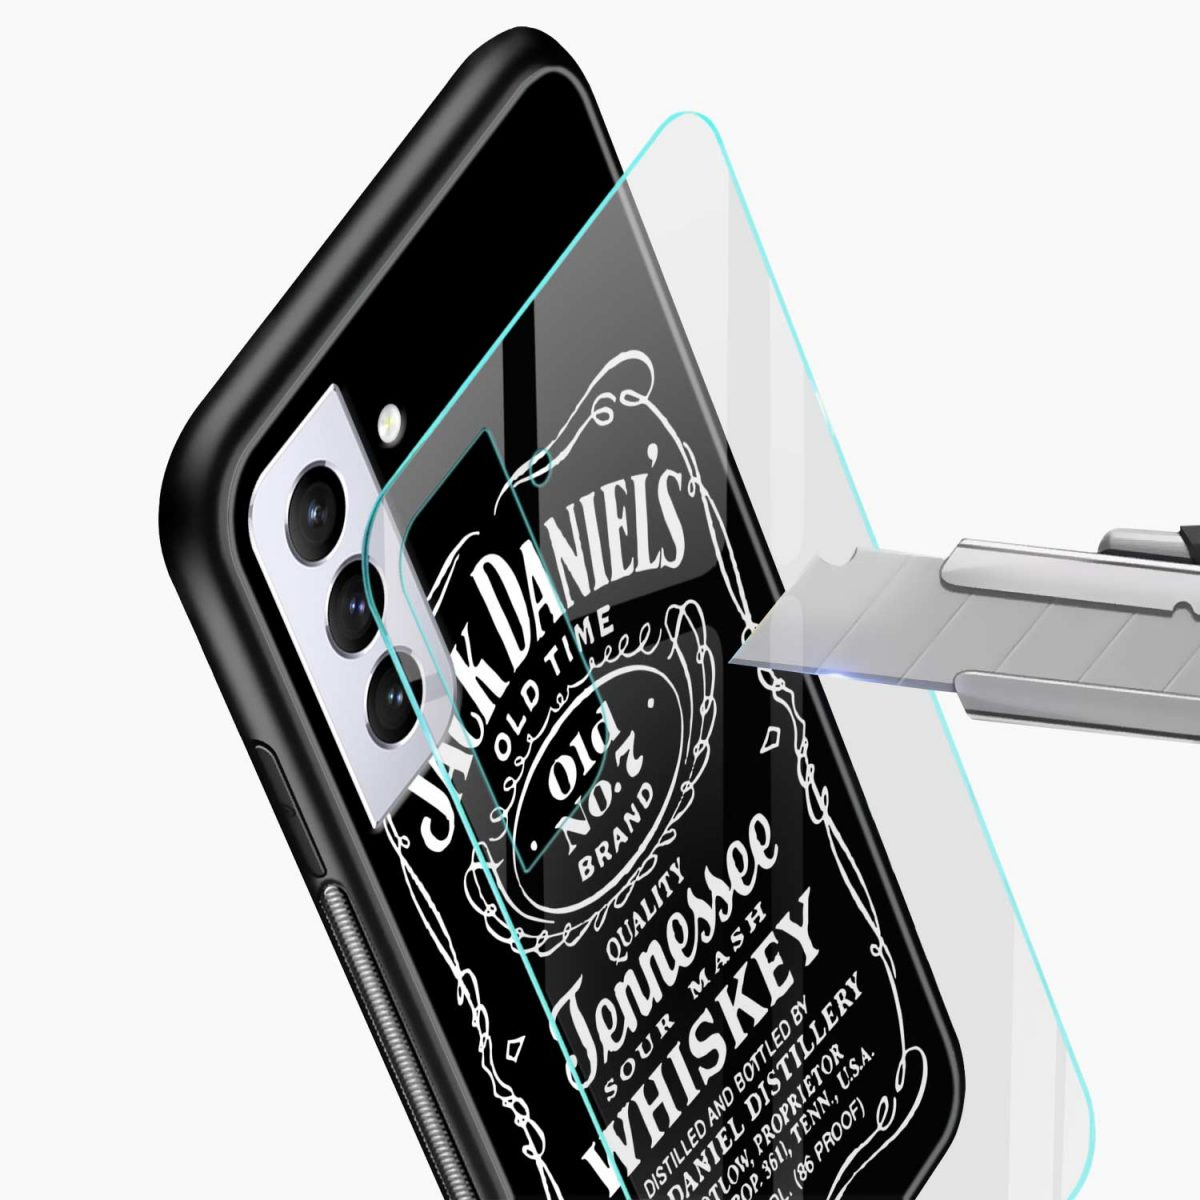 jack daniels whiskey glass view samsung s21 plug back cover